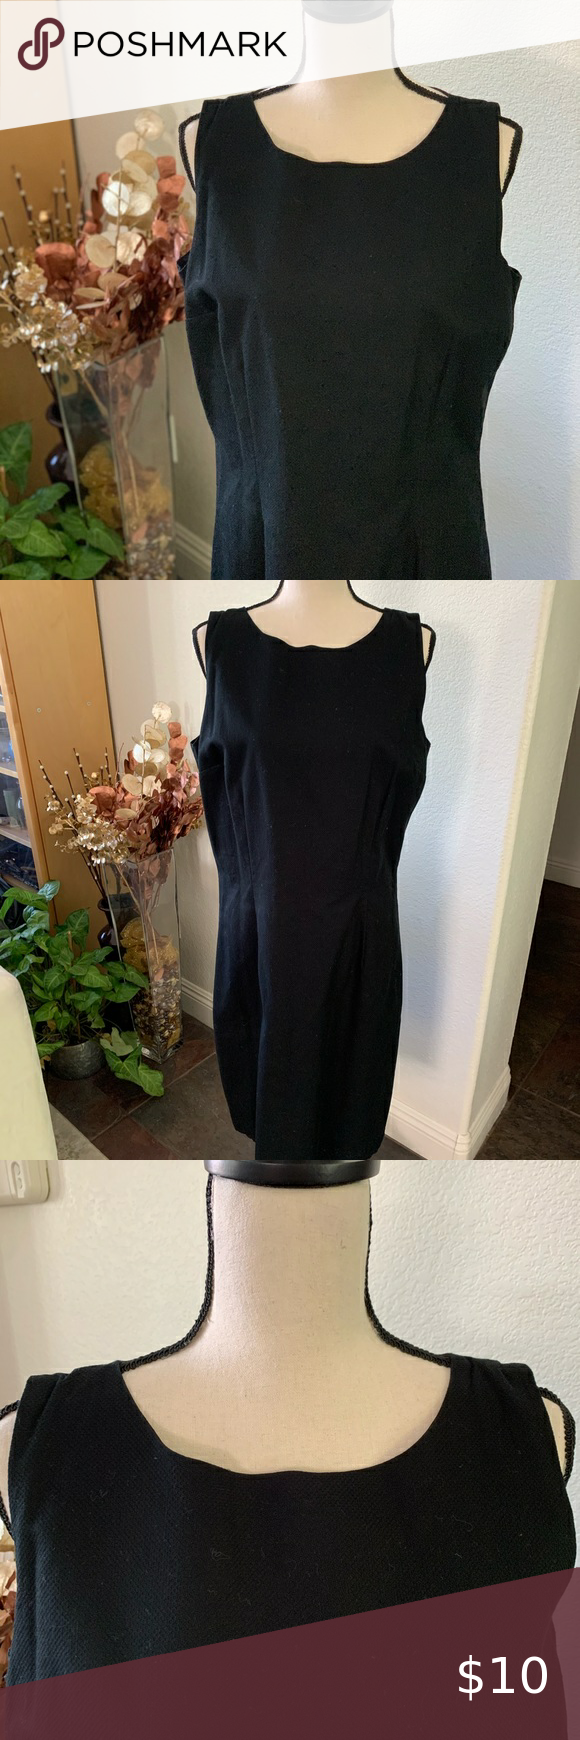 Juans Lp Style Classic Structured Lbd Black Dress Worn Only Once In Great Condition Your Classic Little Black Dress W More Structure To The Shape Great F [ 1740 x 580 Pixel ]